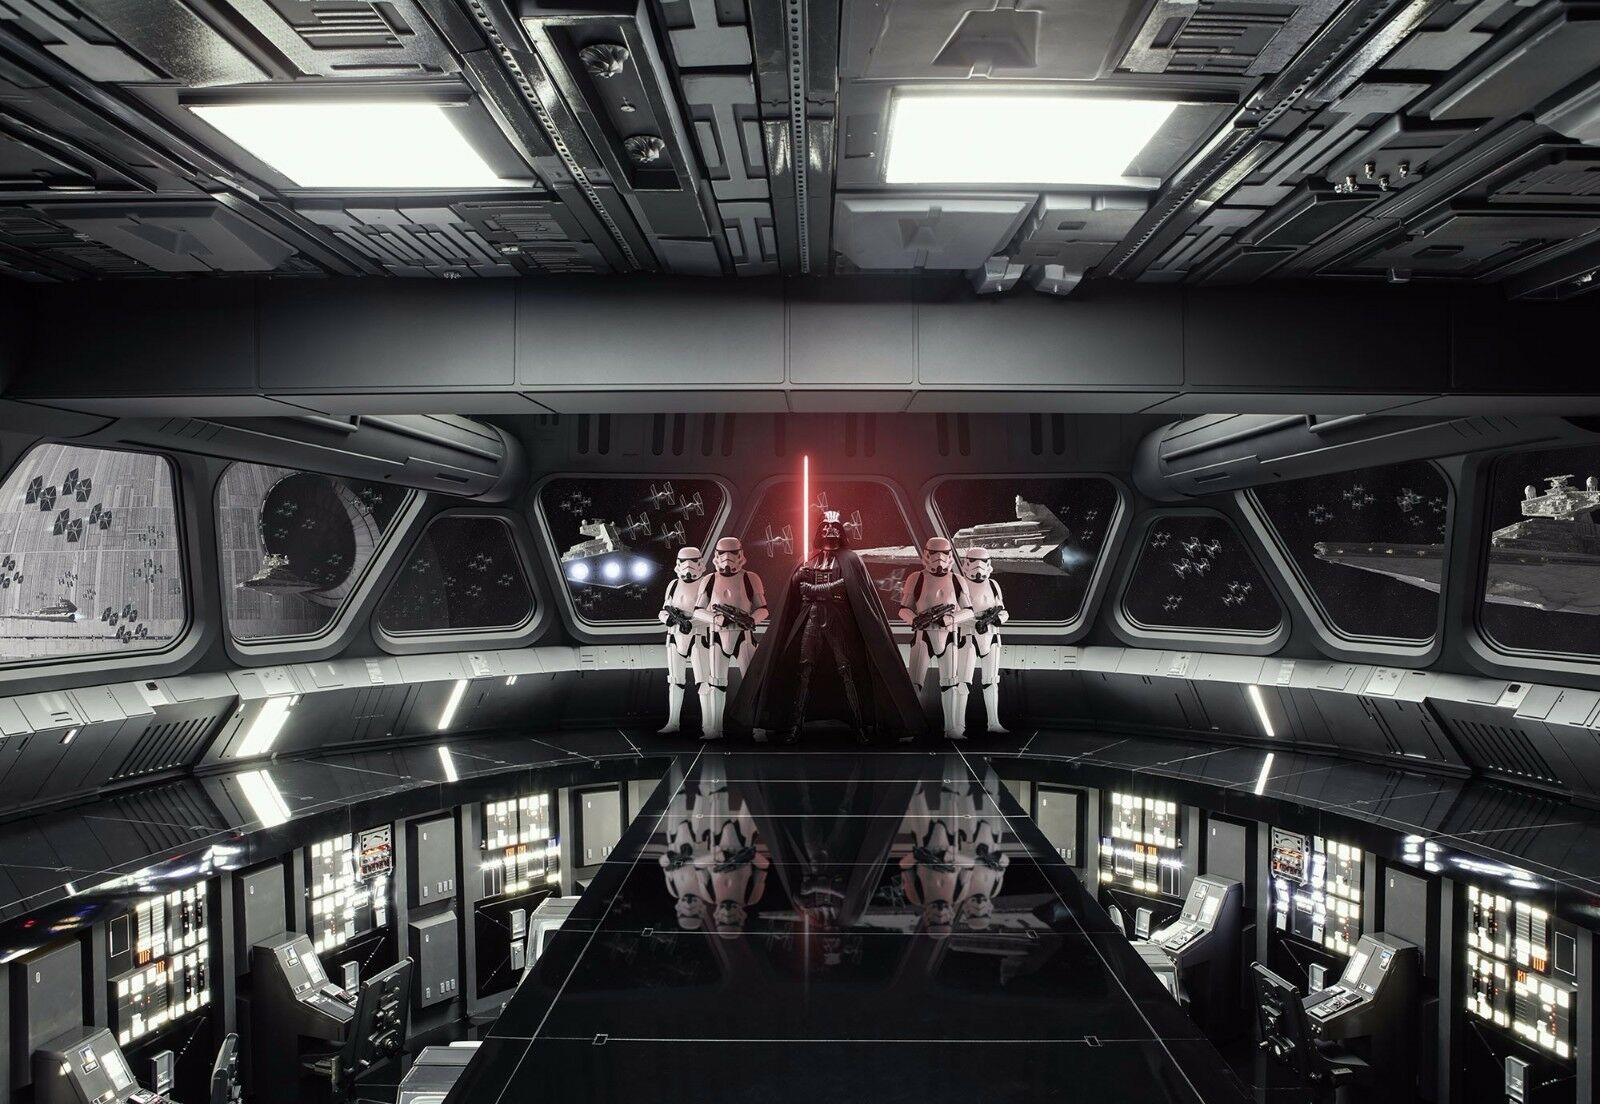 Giant Wallpaper 368x254cm STAR WARS Destroyer Deck For Childrens Room Wall Mural 1 Of 2Only 3 Available